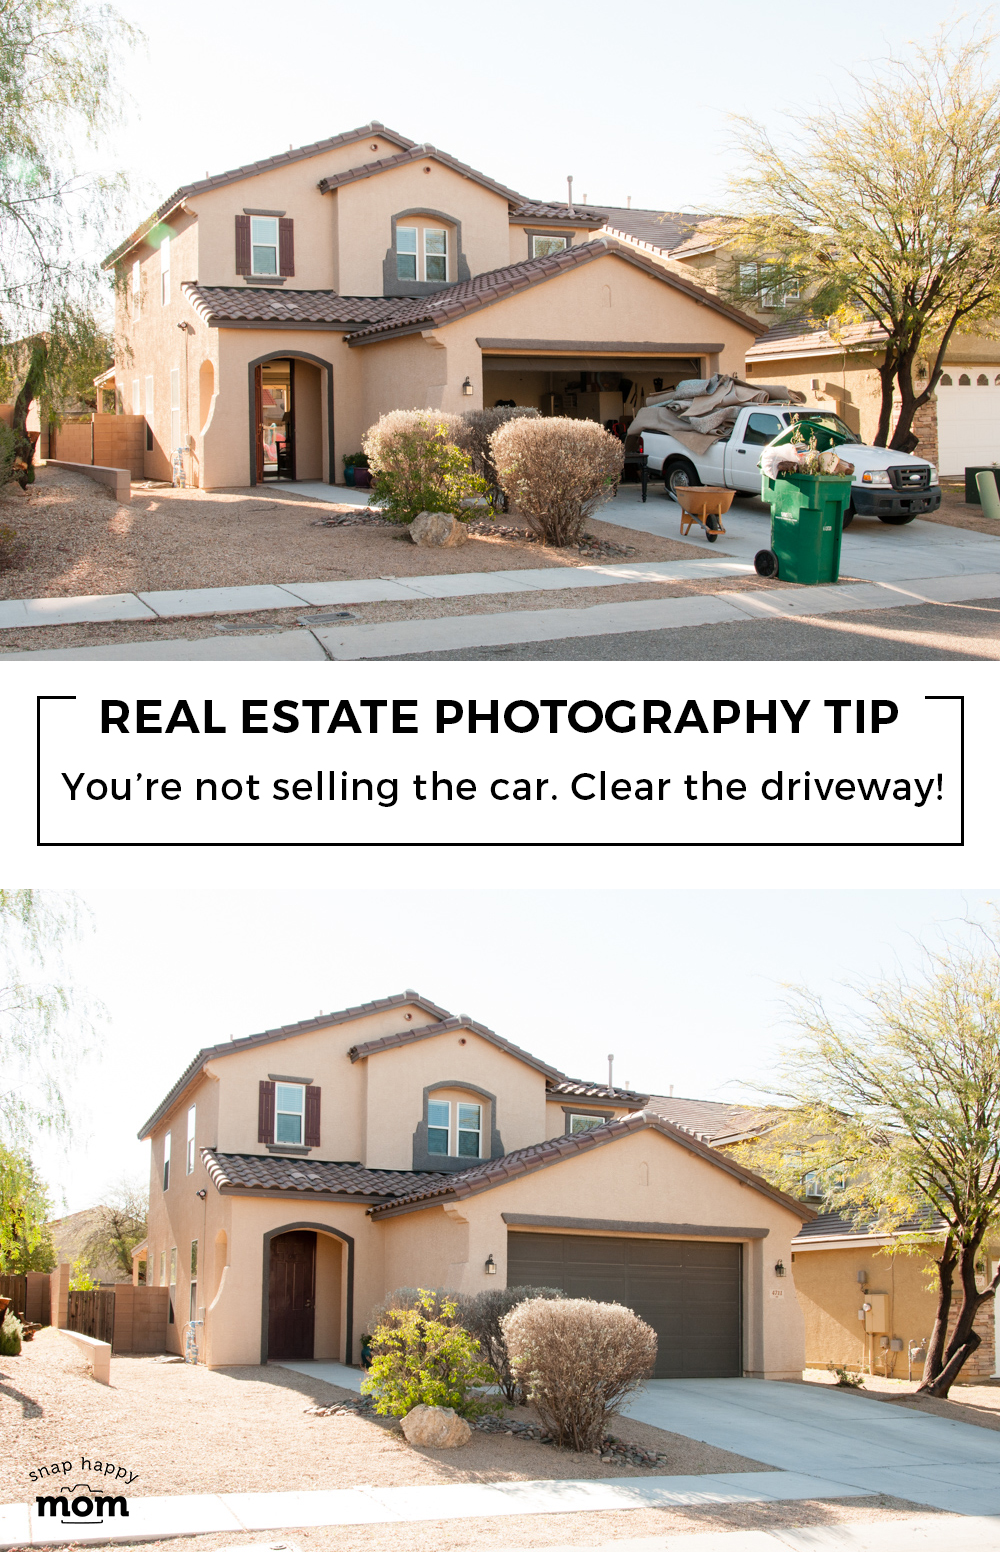 Real Estate Photography Tip: You're not selling the car. Clear the driveway!